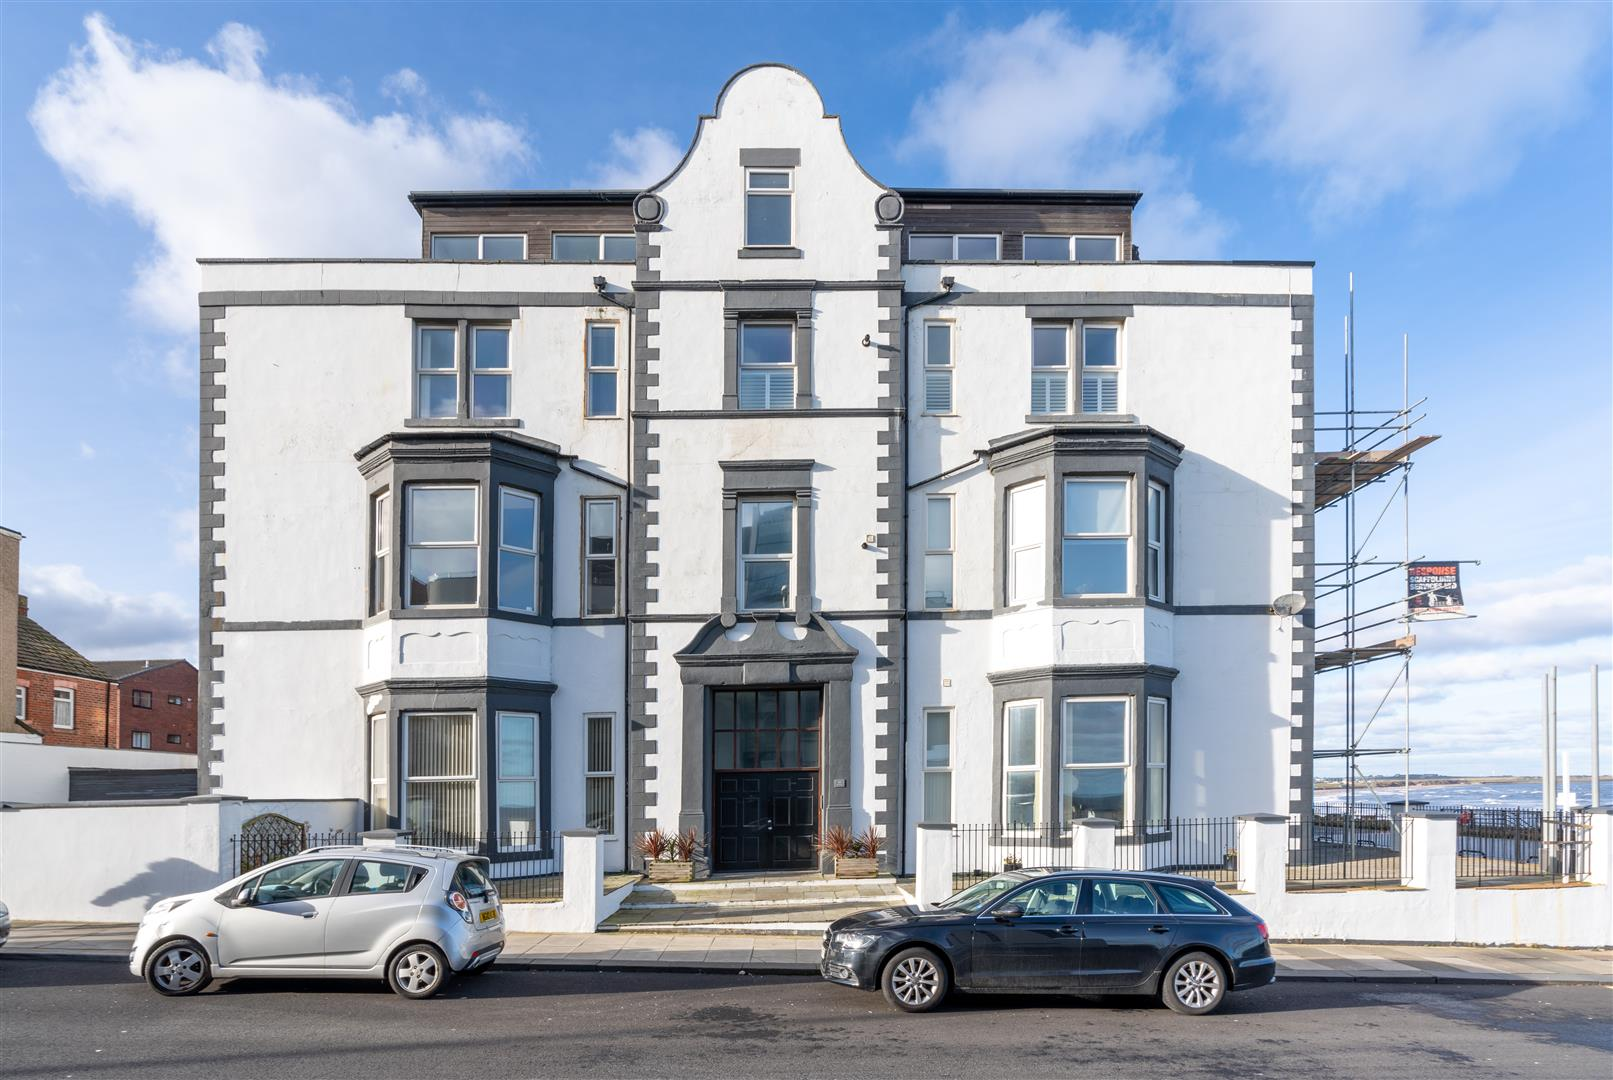 2 bed to rent in Whitley Bay, NE26 2AS, NE26